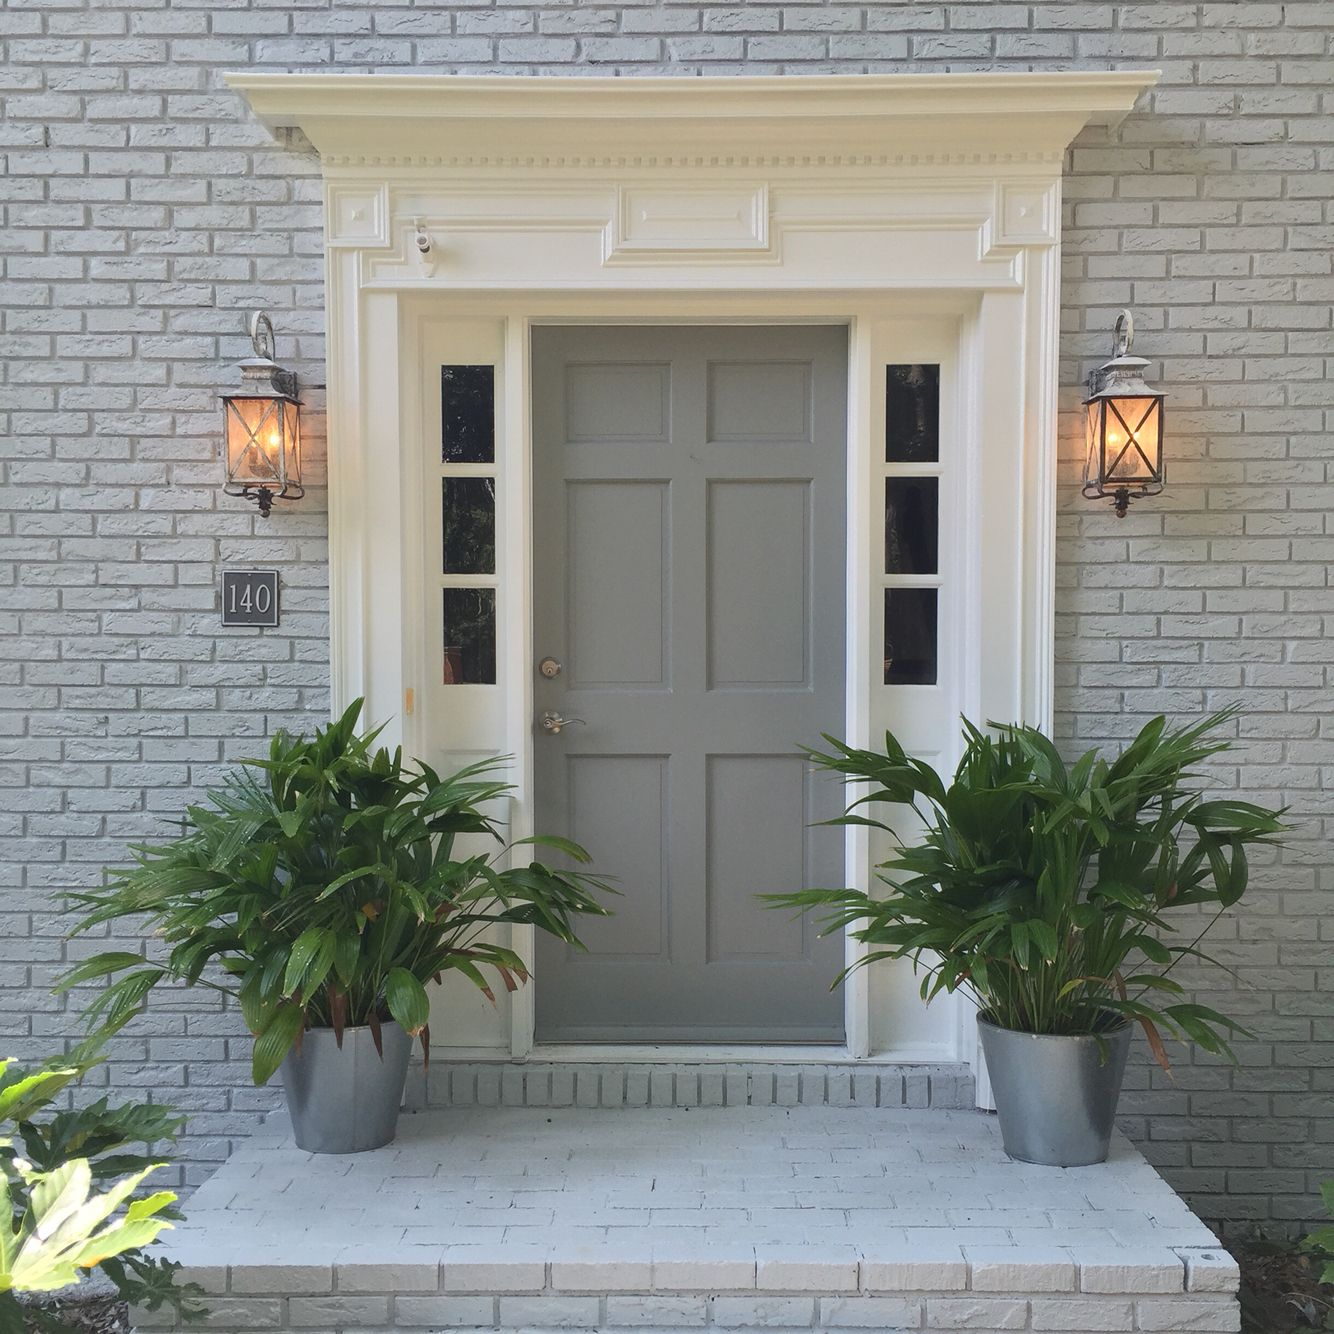 New house exterior color scheme sherwin williams gray screen brick and ear grey door - Grey exterior house paint ideas ideas ...